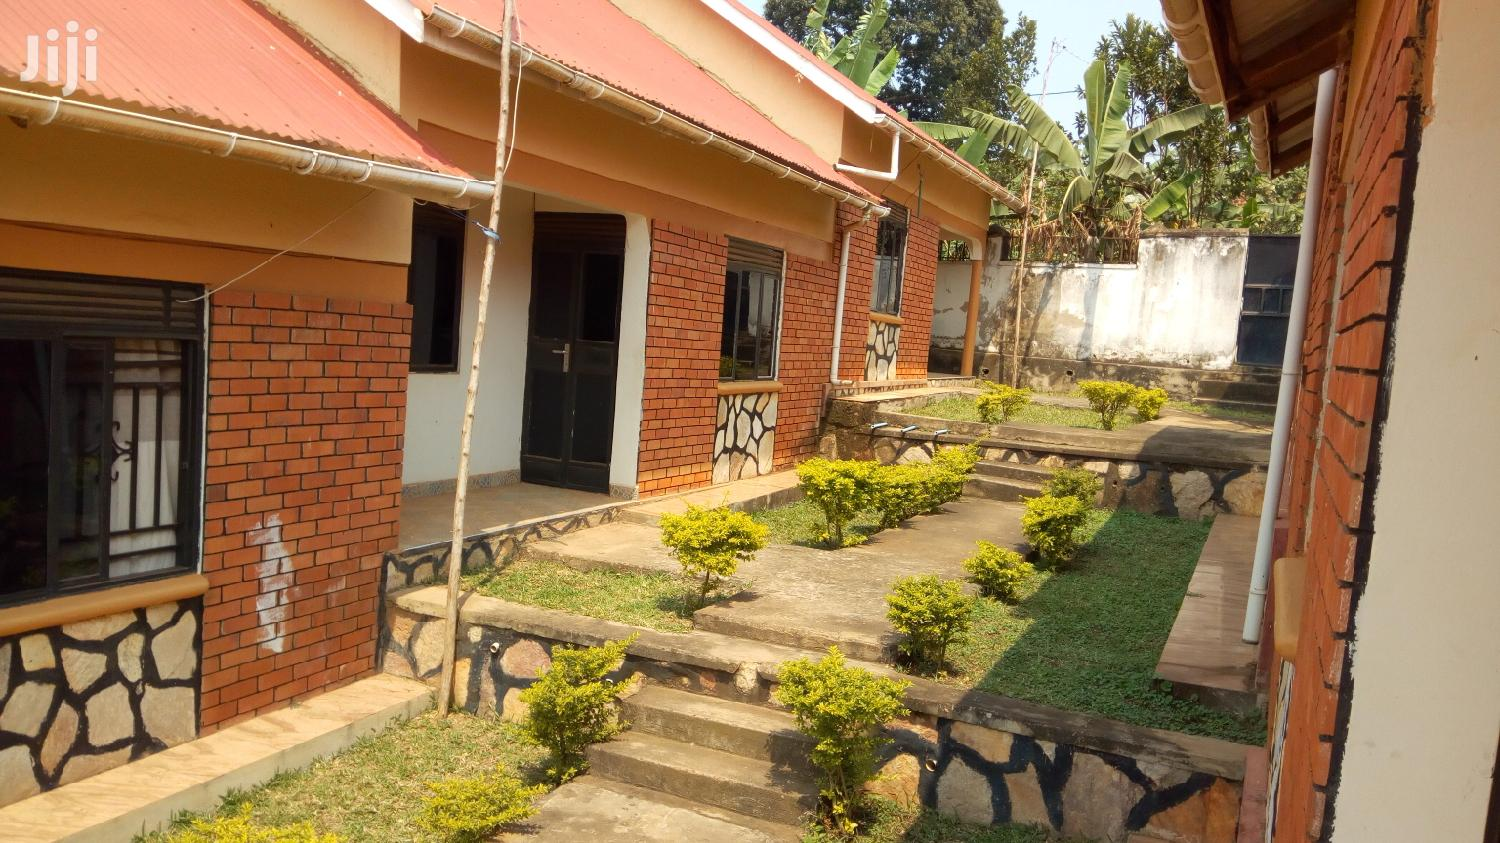 2 Bedroom House In Seeta For Rent